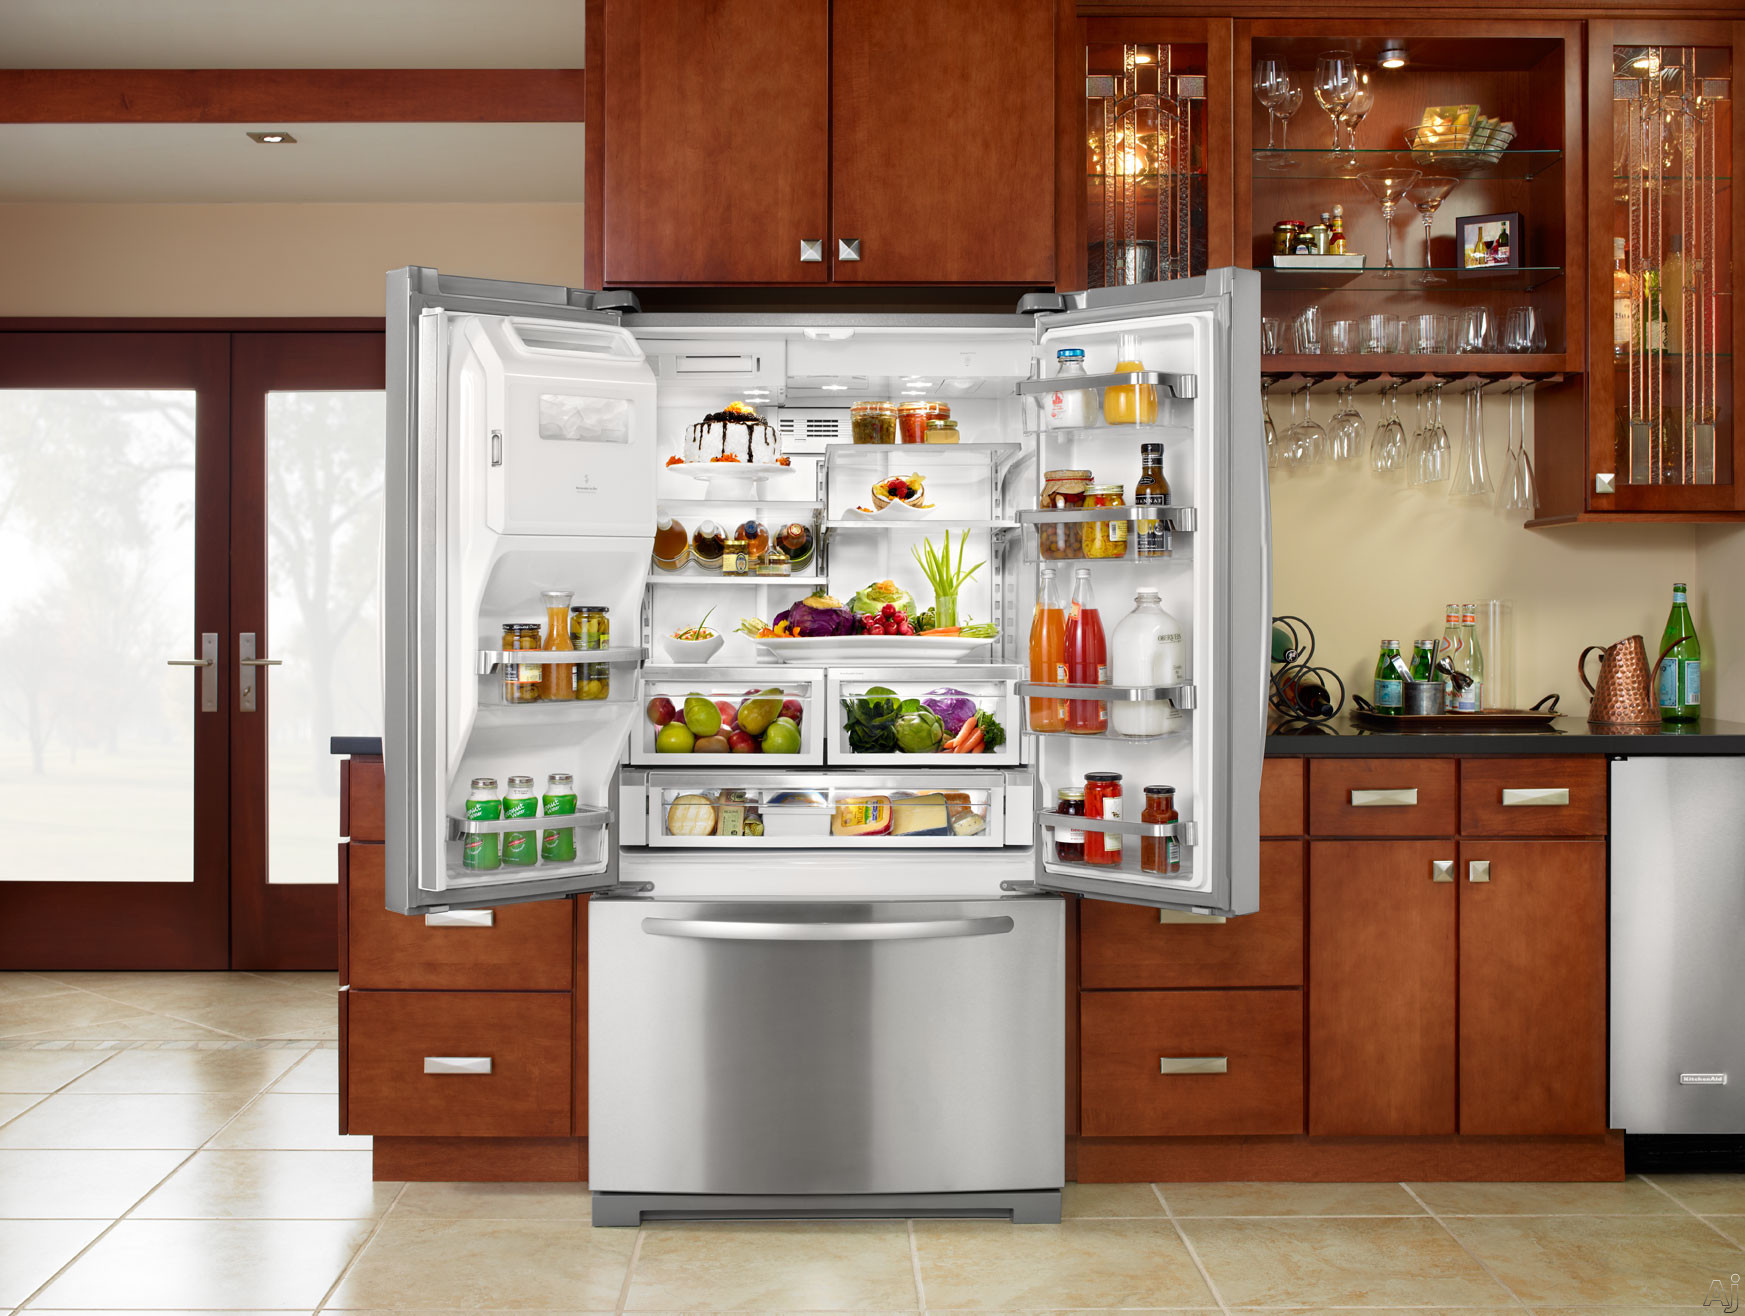 Kitchen Appliance Review The Best Refrigerator In India Eff Times